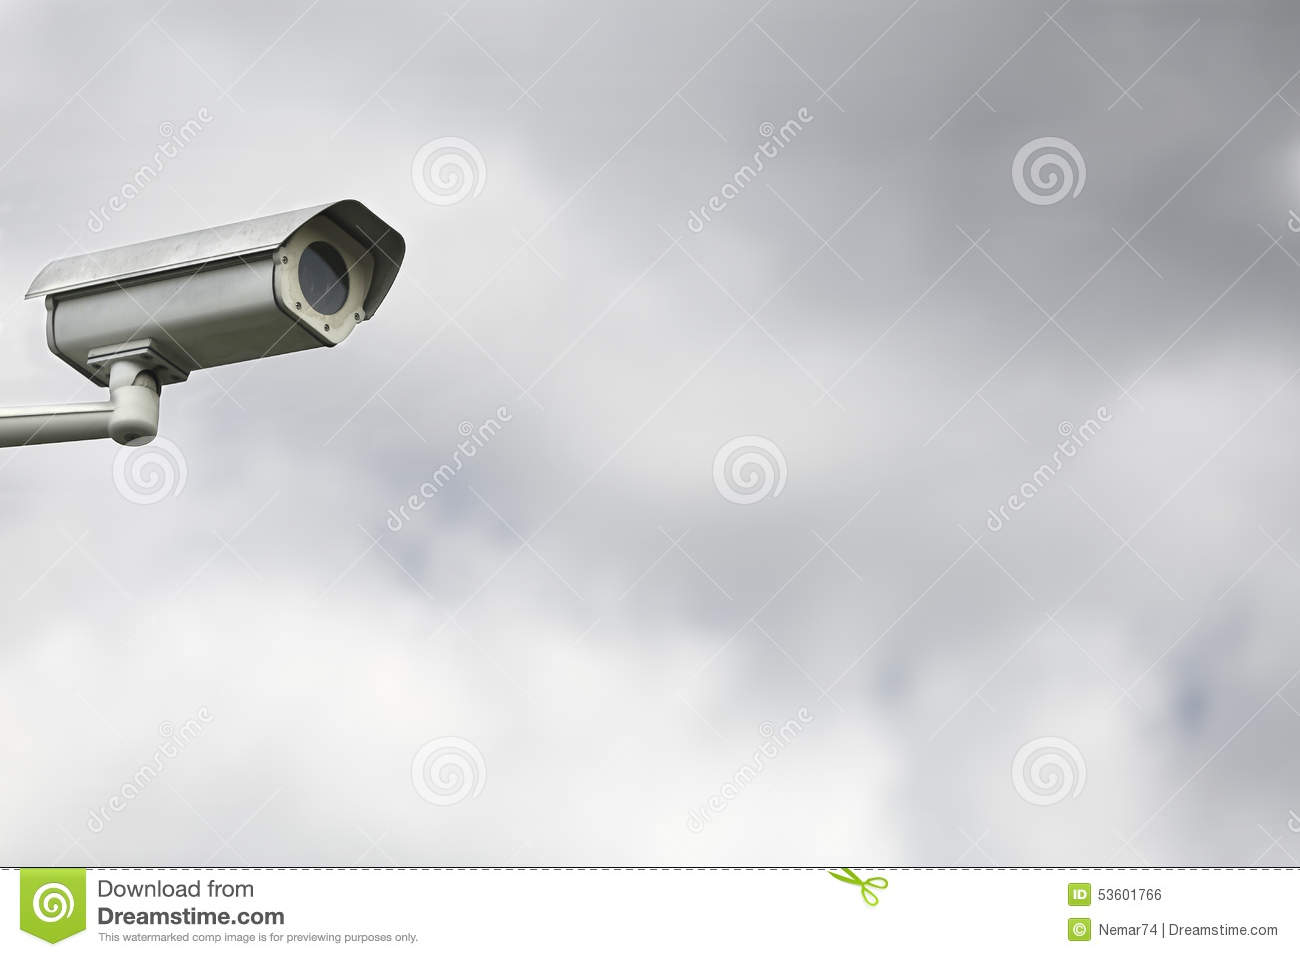 One Cctv Camera For Video Surveillance And Monitoring And